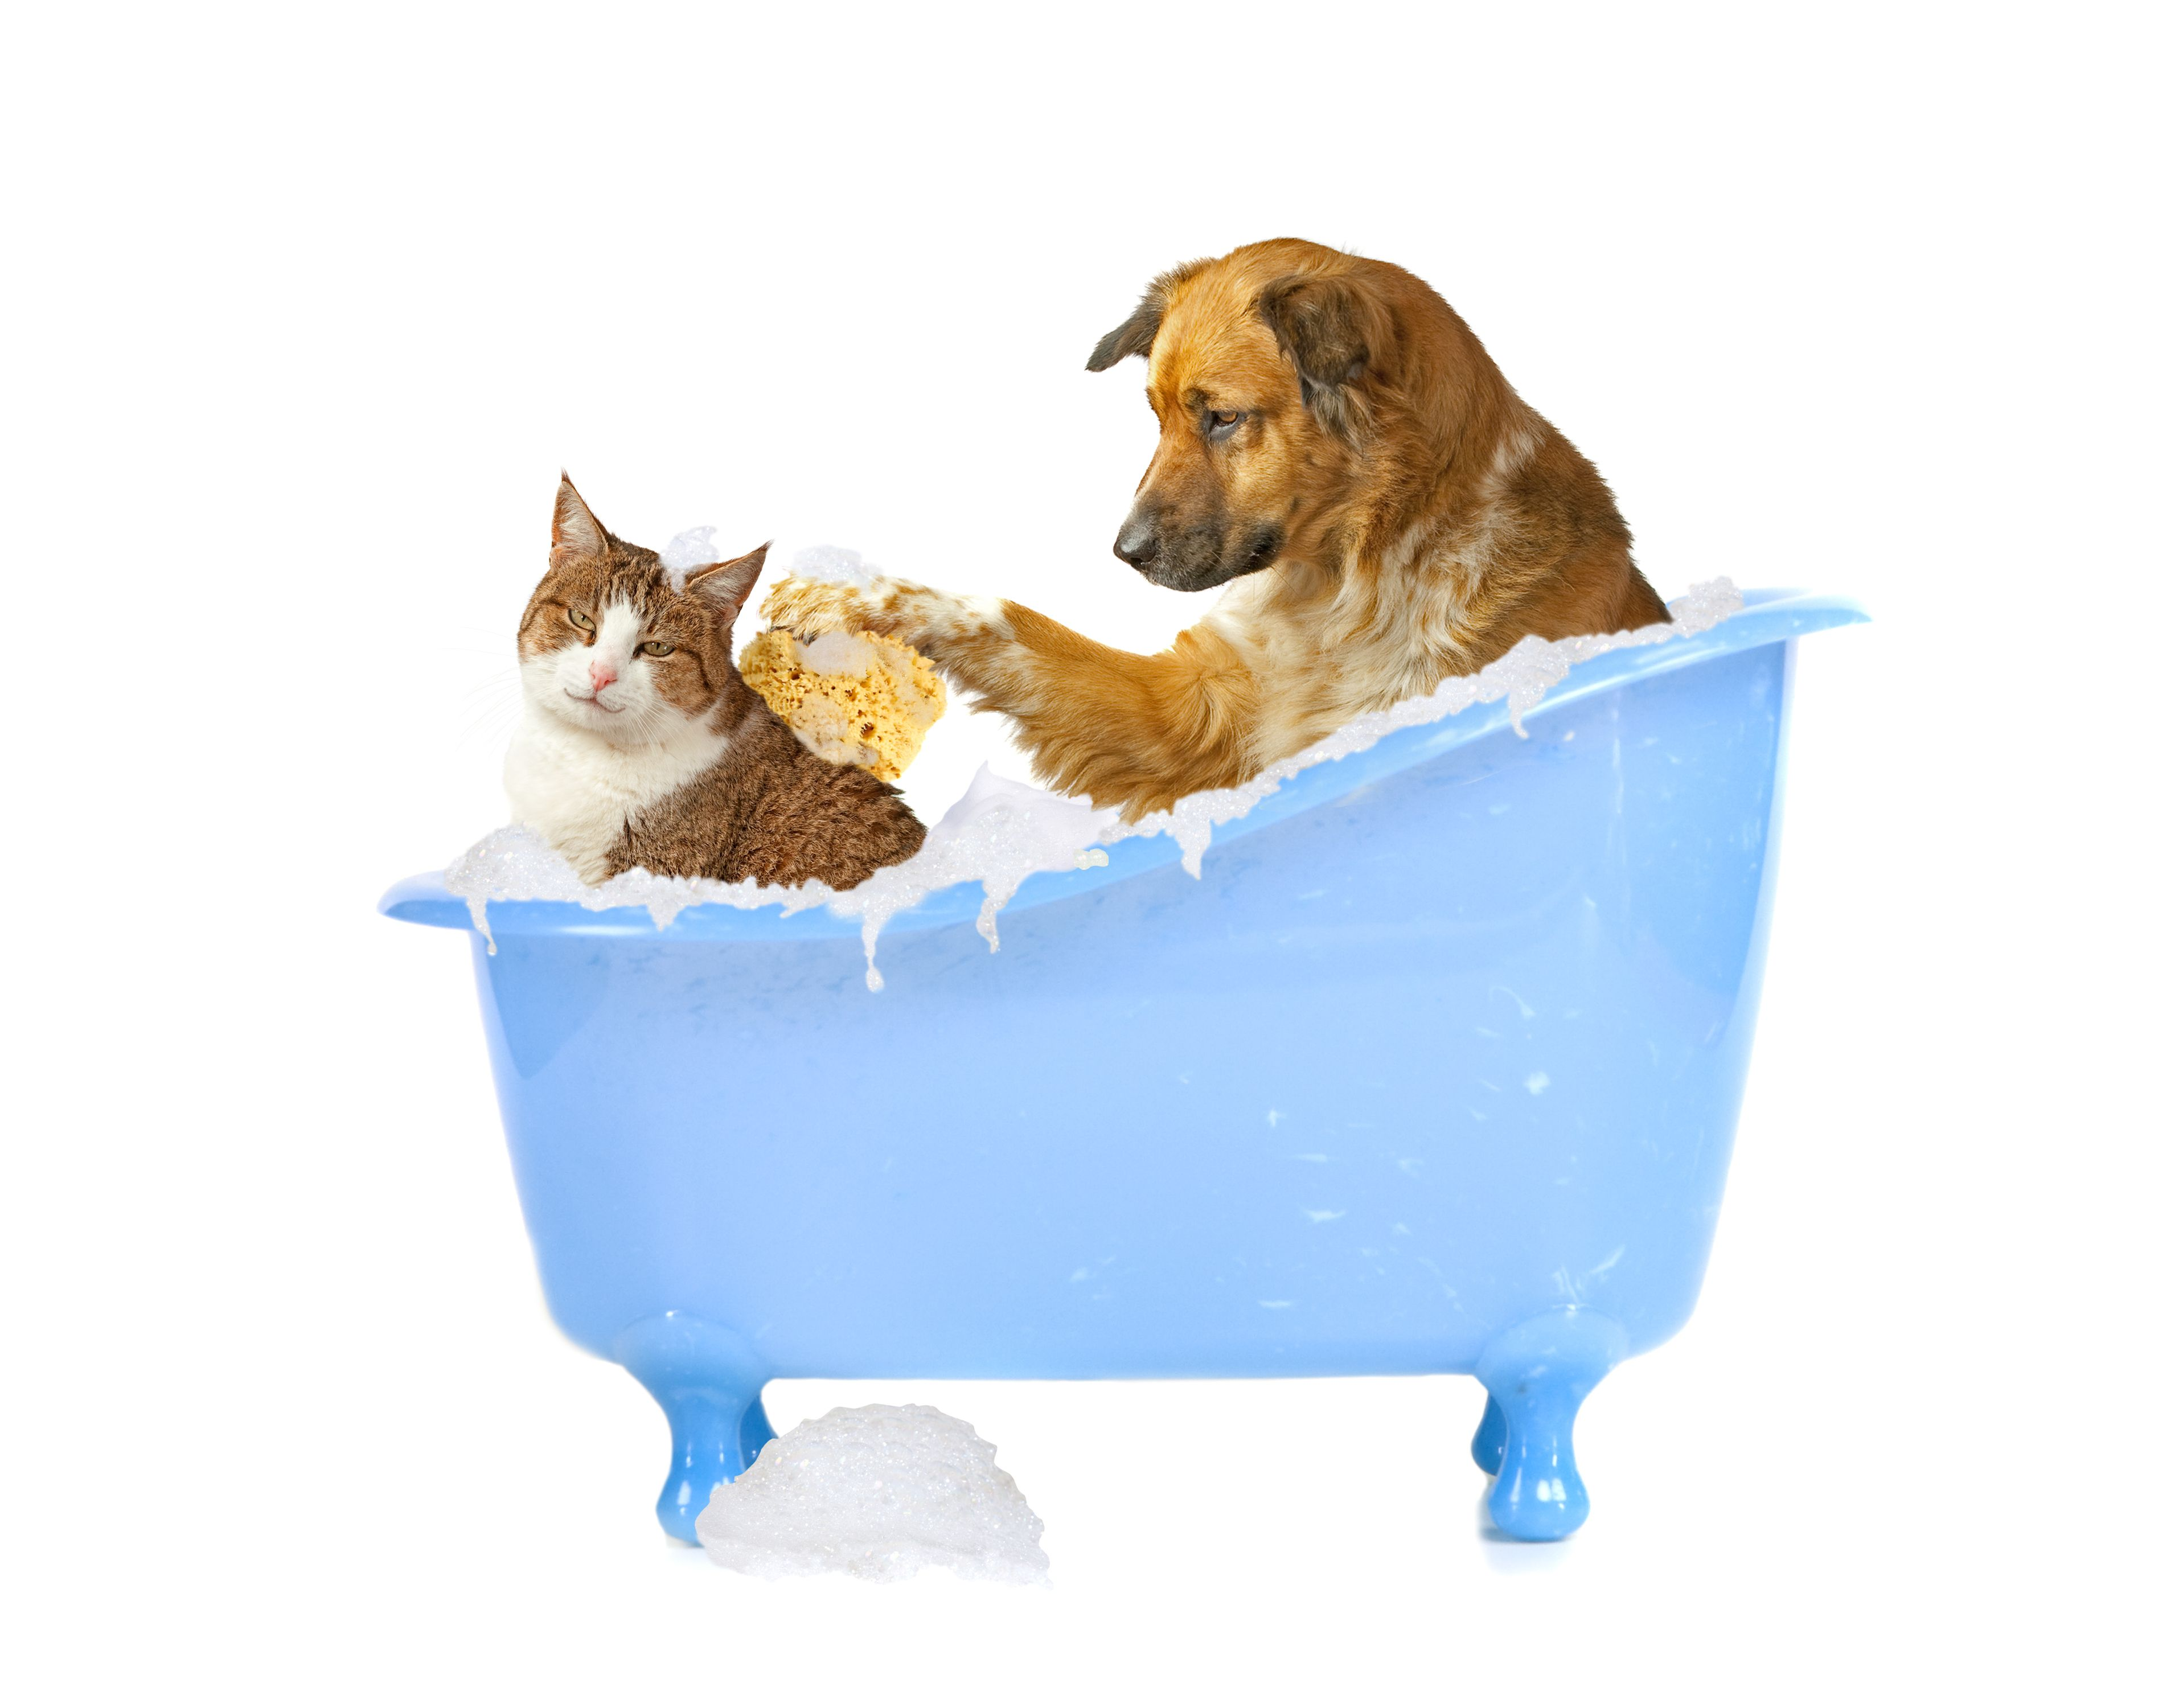 Dog Bathing Cat Cat Wash Dog Cat Pictures Funny Cats And Dogs